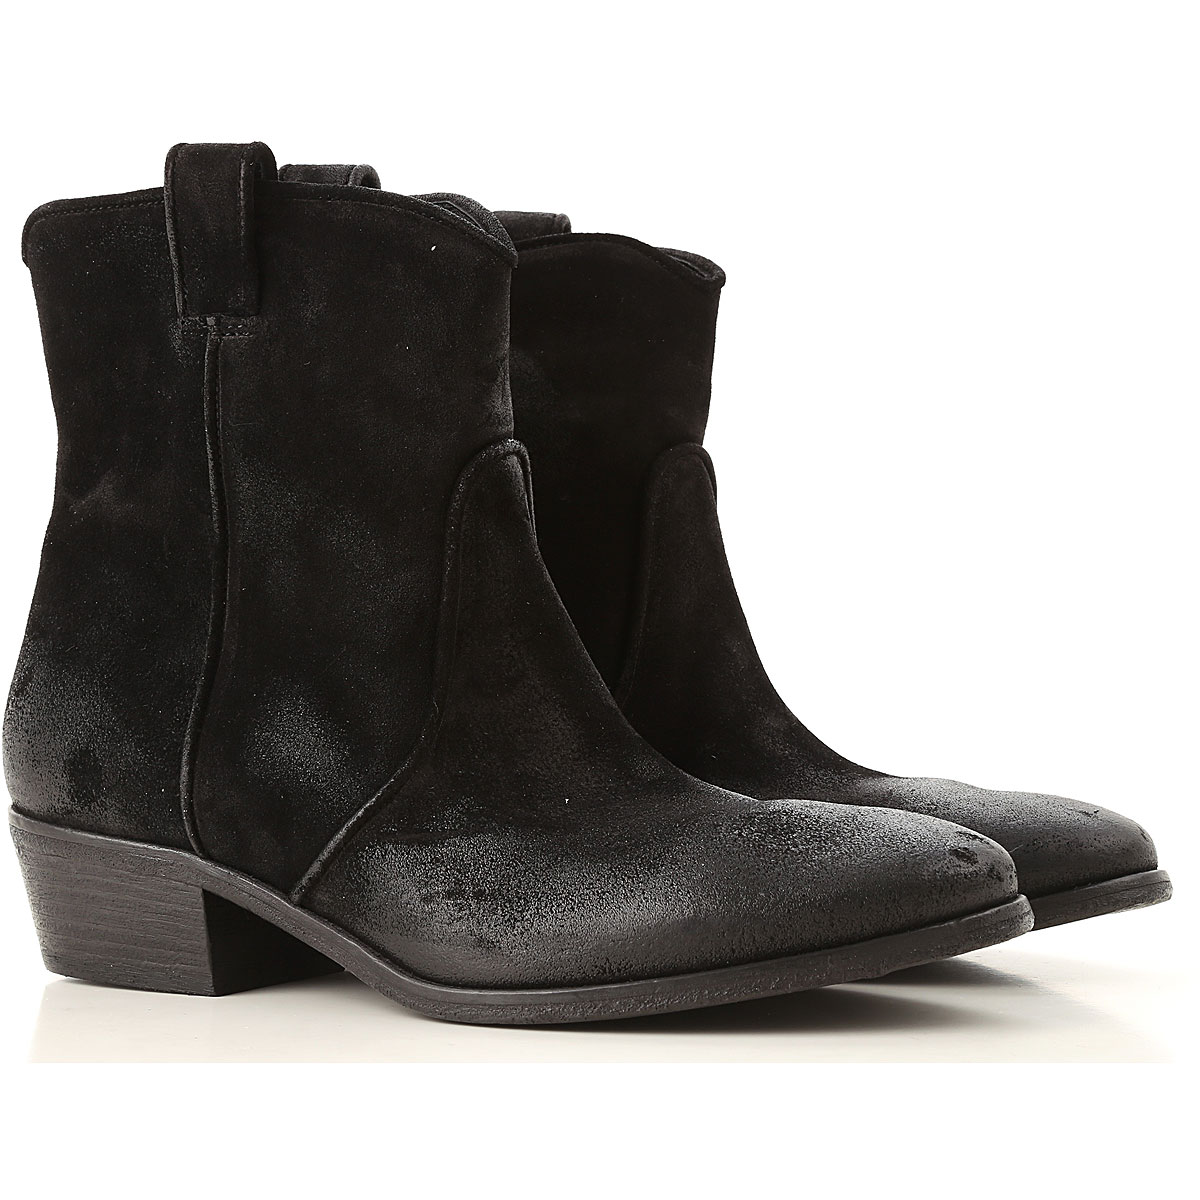 Image of Elena Iachi Boots for Women, Booties, Black, Suede leather, 2017, 6 7 8 9